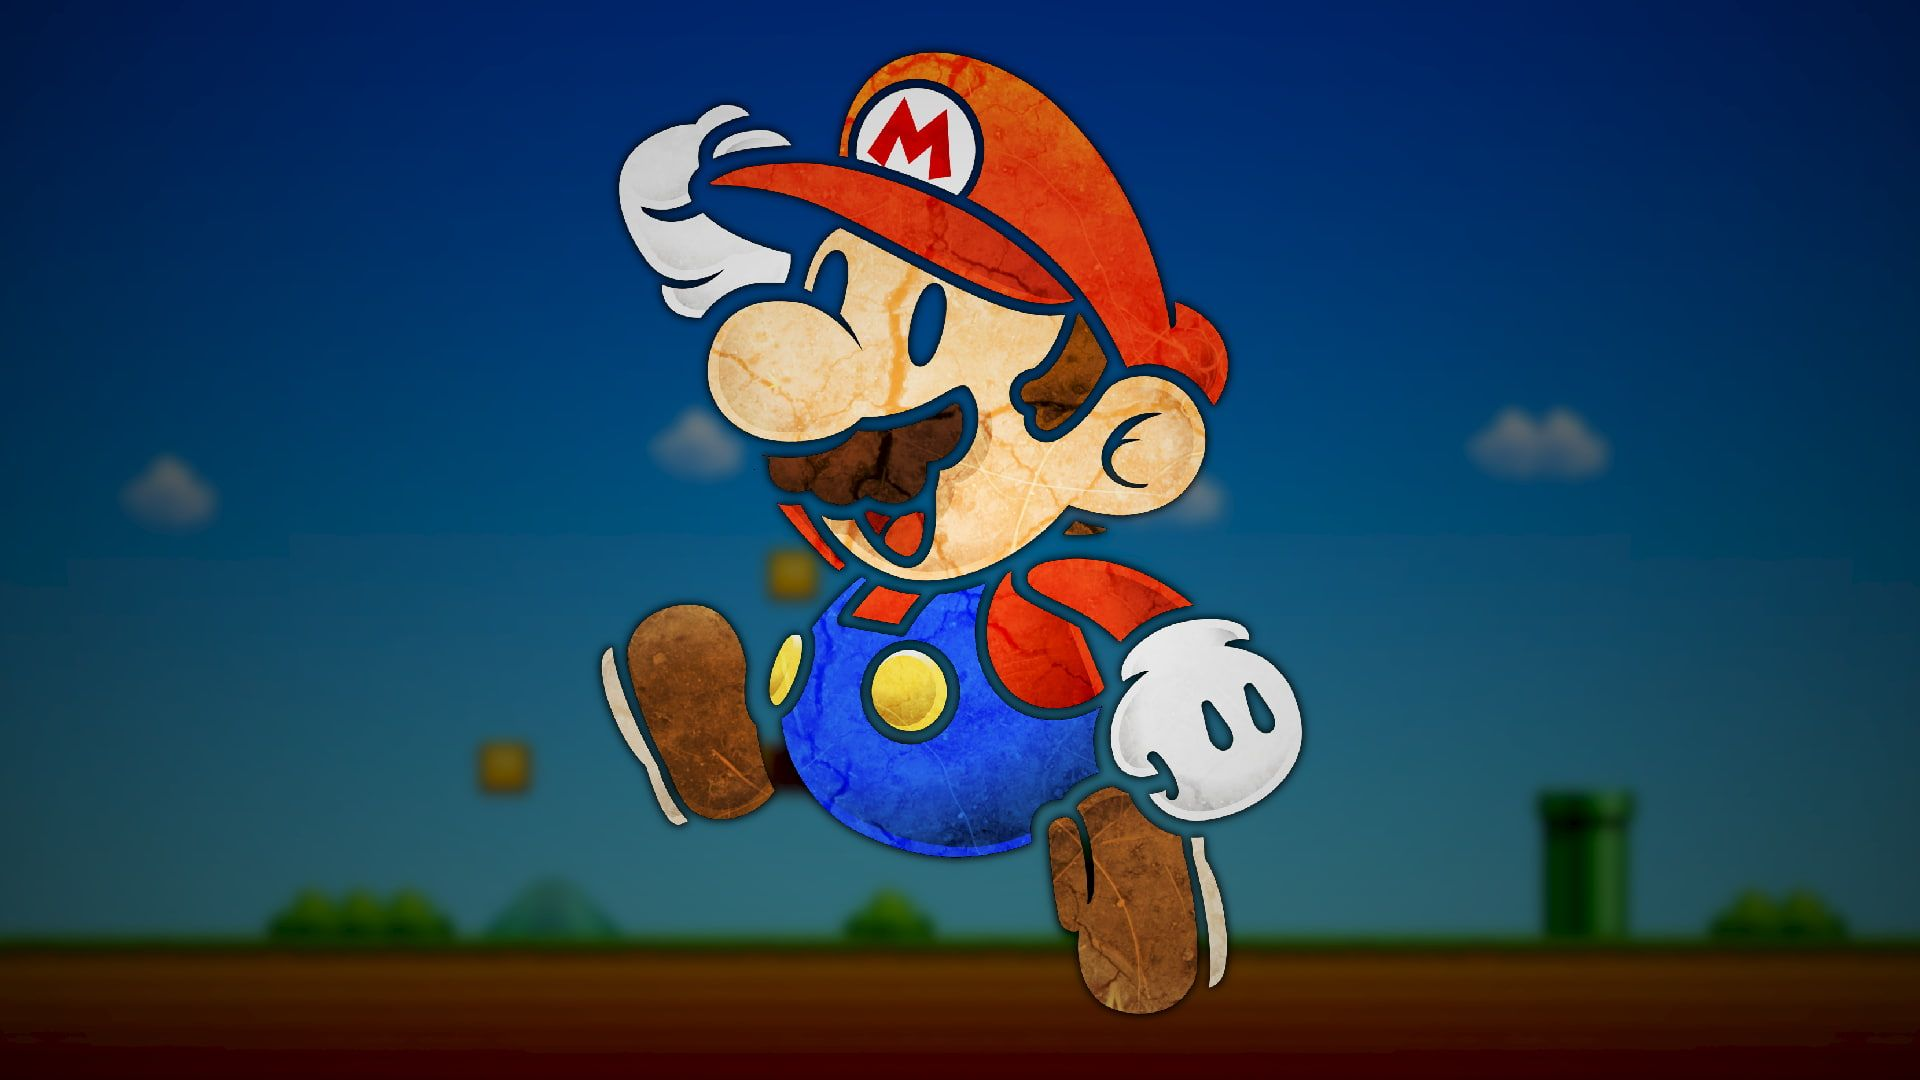 Super Mario Paper Mario Video Games Digital Art Nintendo Artwork 1080p Wallpaper Hdwallpaper Desktop Desktop Wallpaper Hd Wallpaper Android Wallpaper